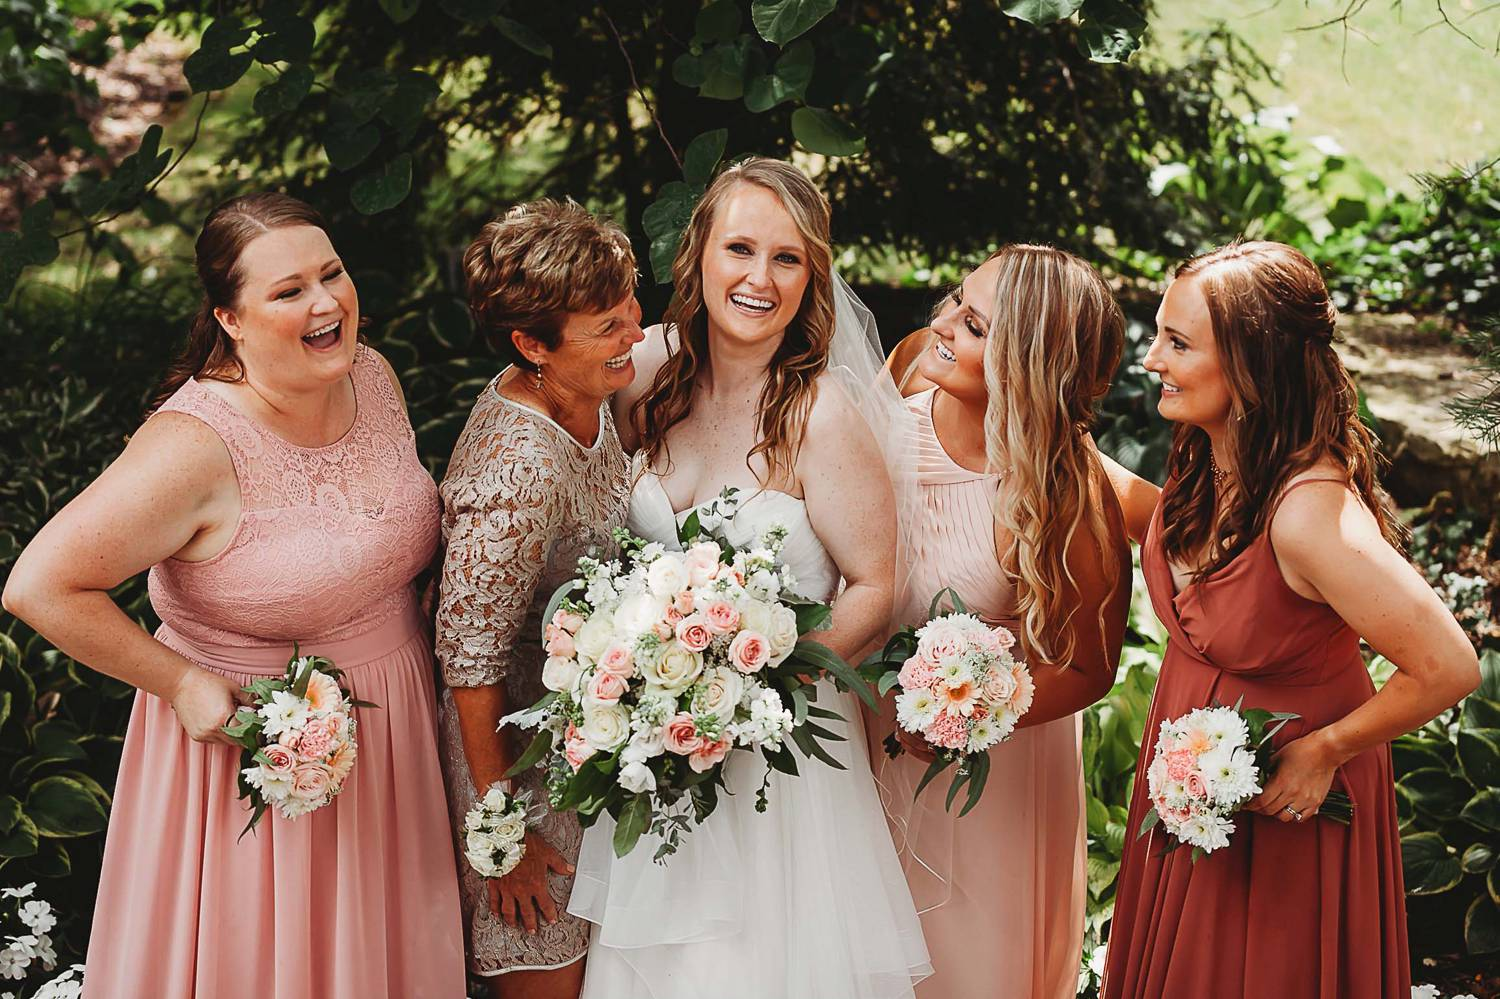 Bridesmaids in pink dresses surround a smiling bride